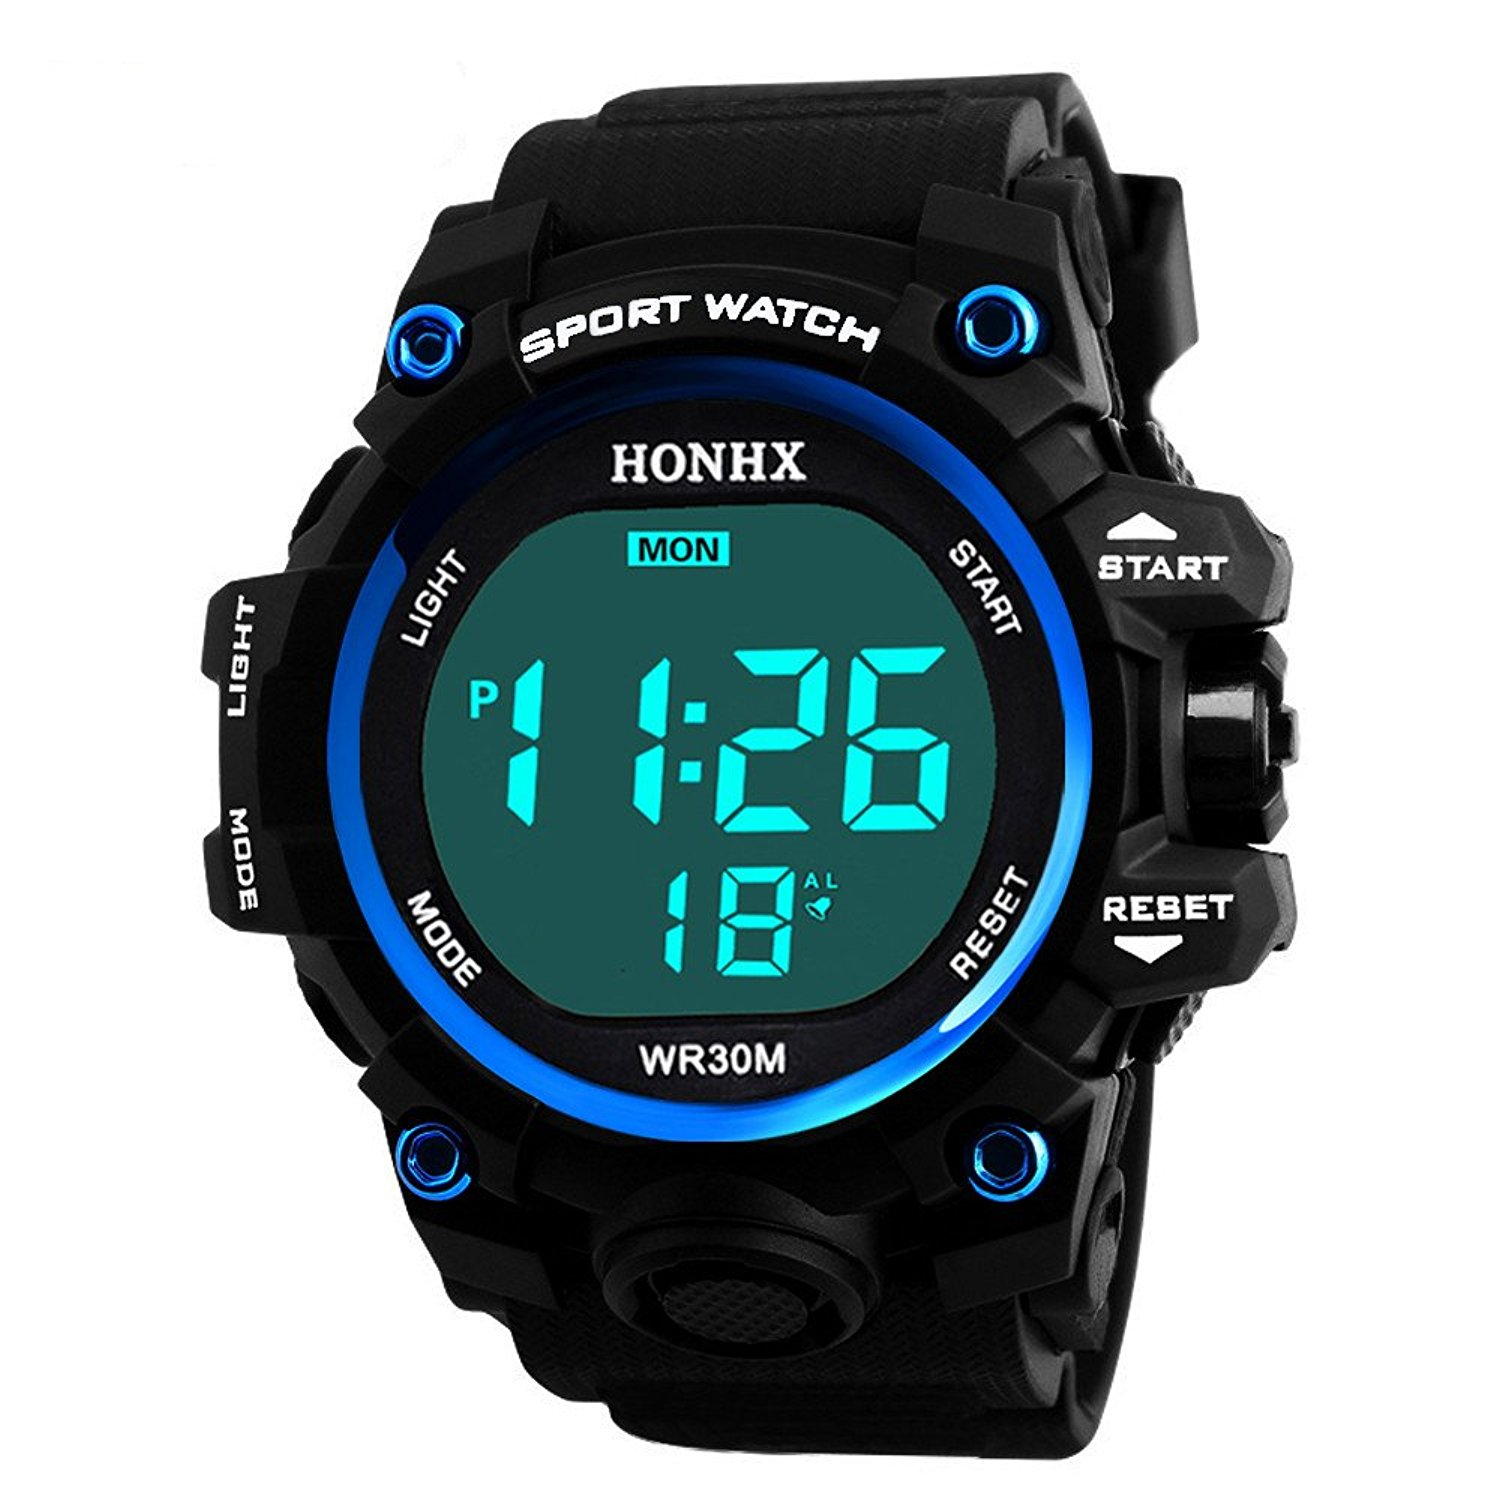 COOKI Mens Digital Sports Watches LED Screen Large Face Waterproof Military Watches and Casual Waterproof Luminous Simple Army Watch Stopwatch Alarm Watches, Mens Watches on Sale Clearance